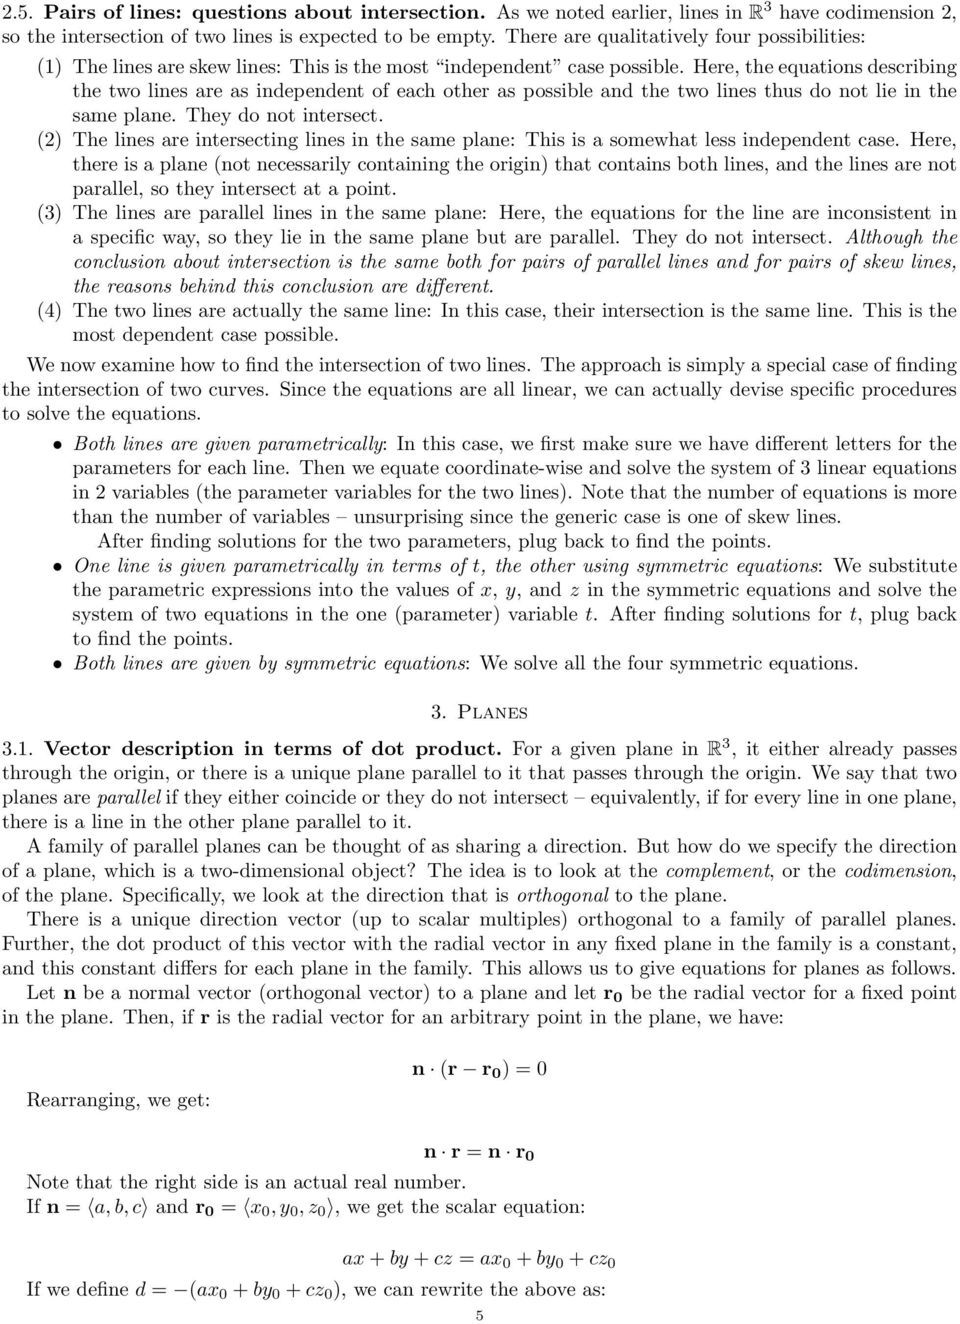 Here, the equtions descriing the two lines re s independent of ech other s possile nd the two lines thus do not lie in the sme plne. They do not intersect.